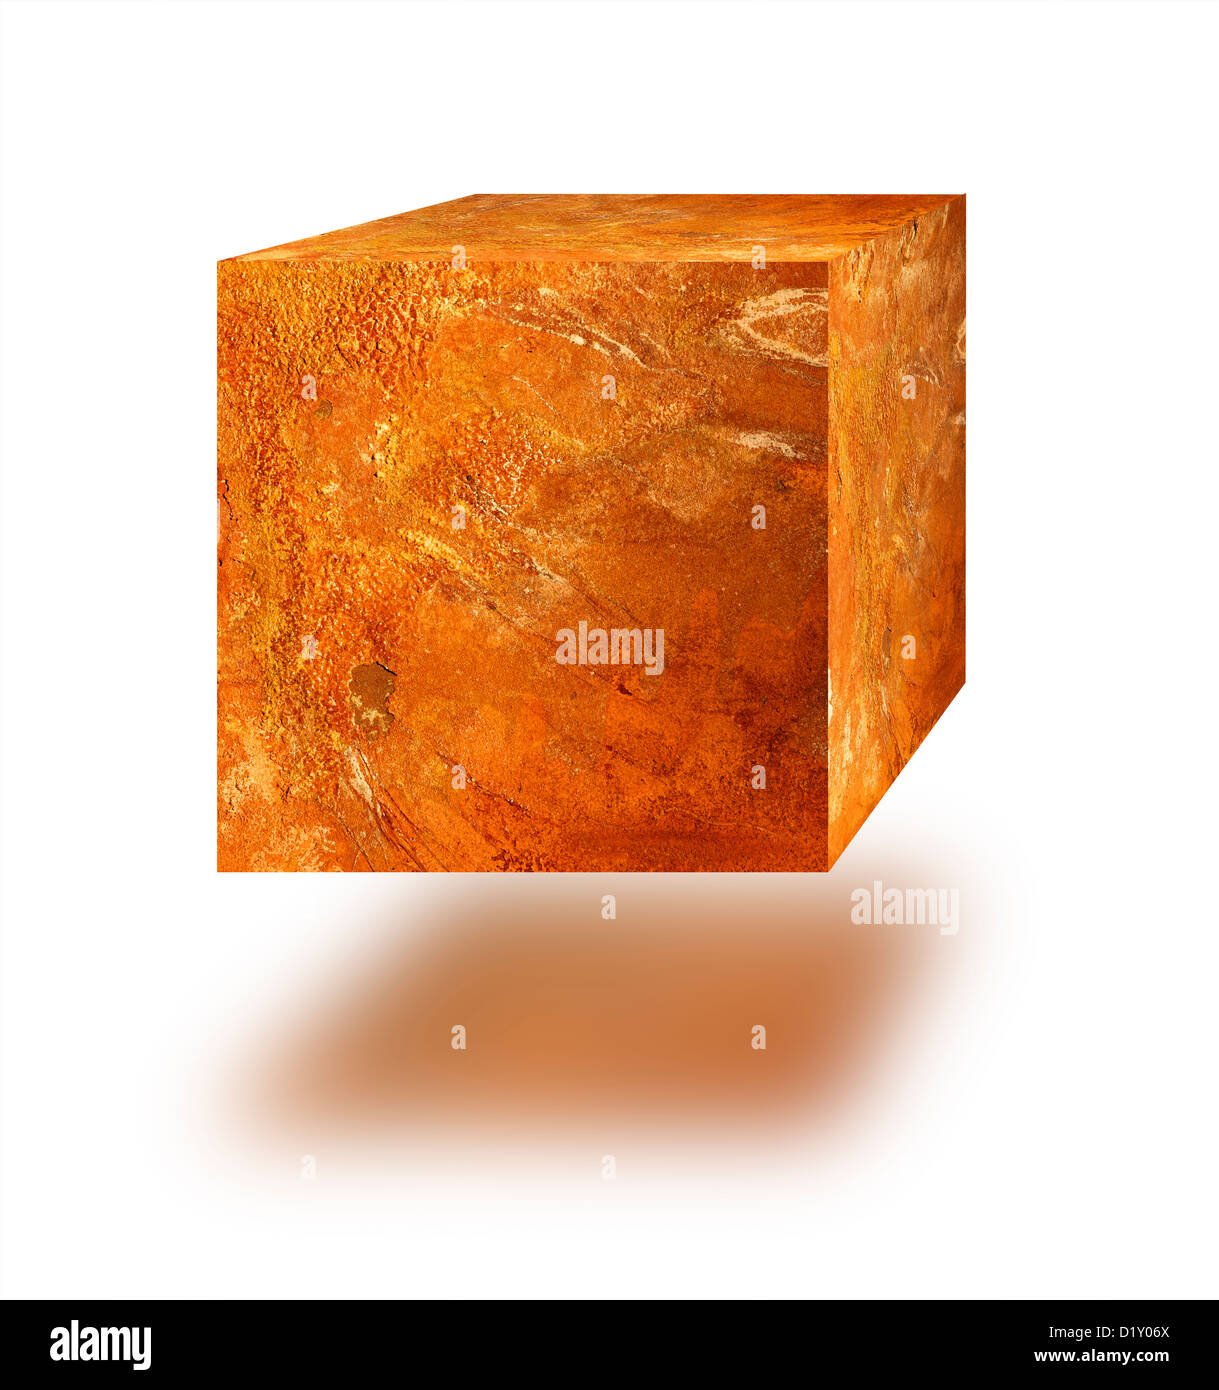 Cube of rust against white background - Stock Image